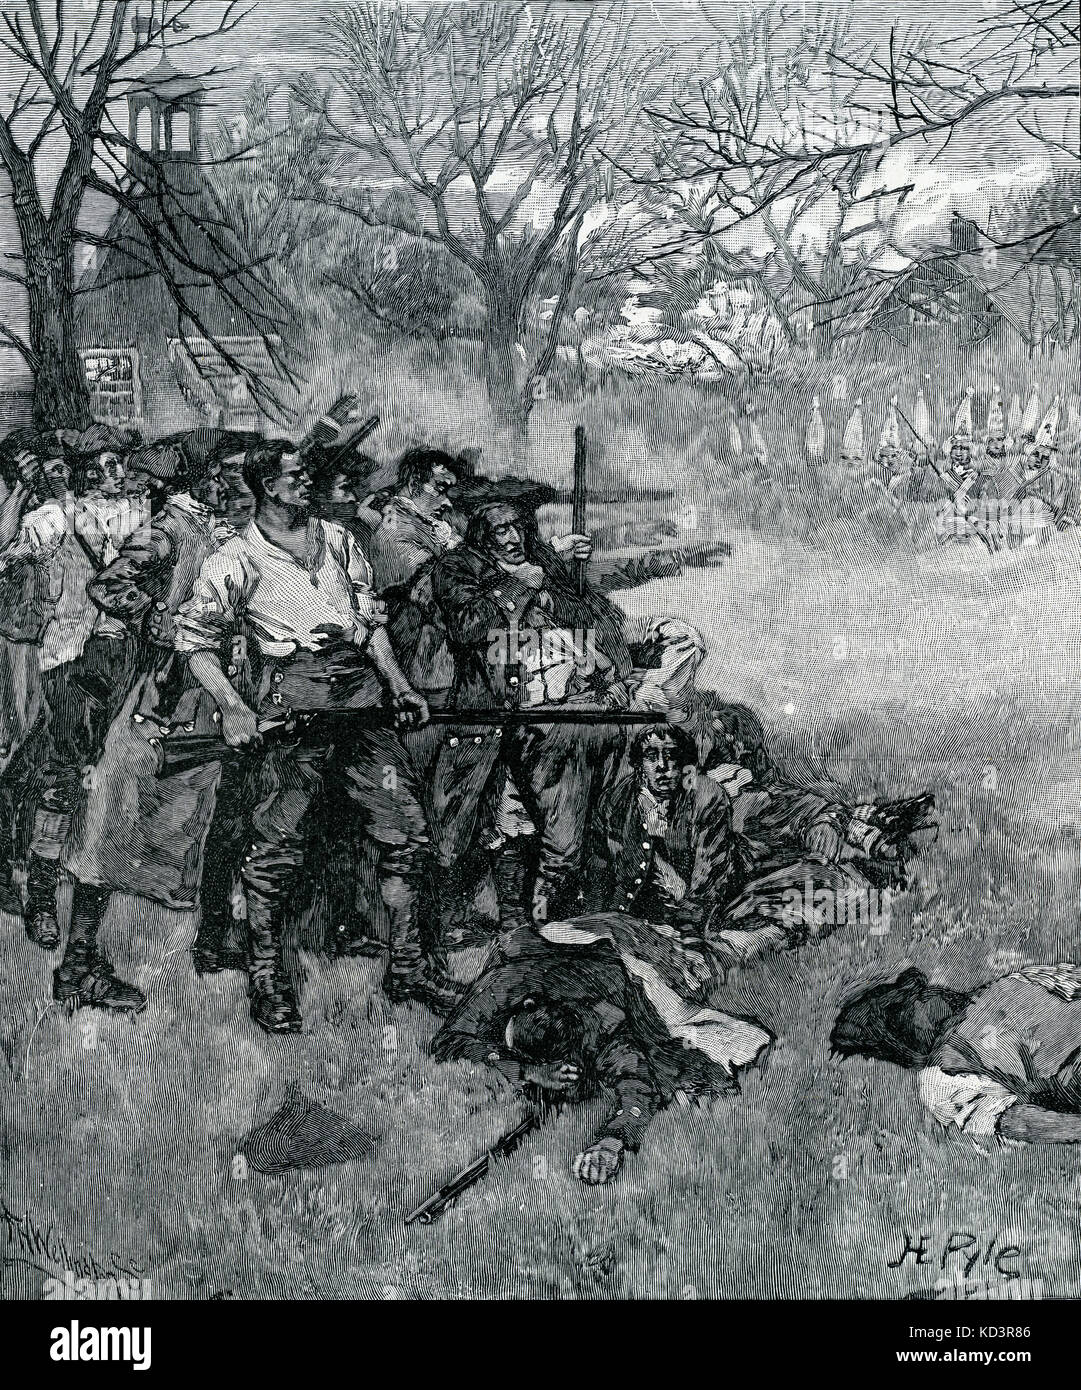 american revolution 1775 essay 2018-7-18 the thirteen colonies that became the usa were originally colonies of great britain by the time the american revolution took place, the citizens of these colonies were beginning to get tired of the british rule rebellion and discontent were rampant for those people who see the change in the.